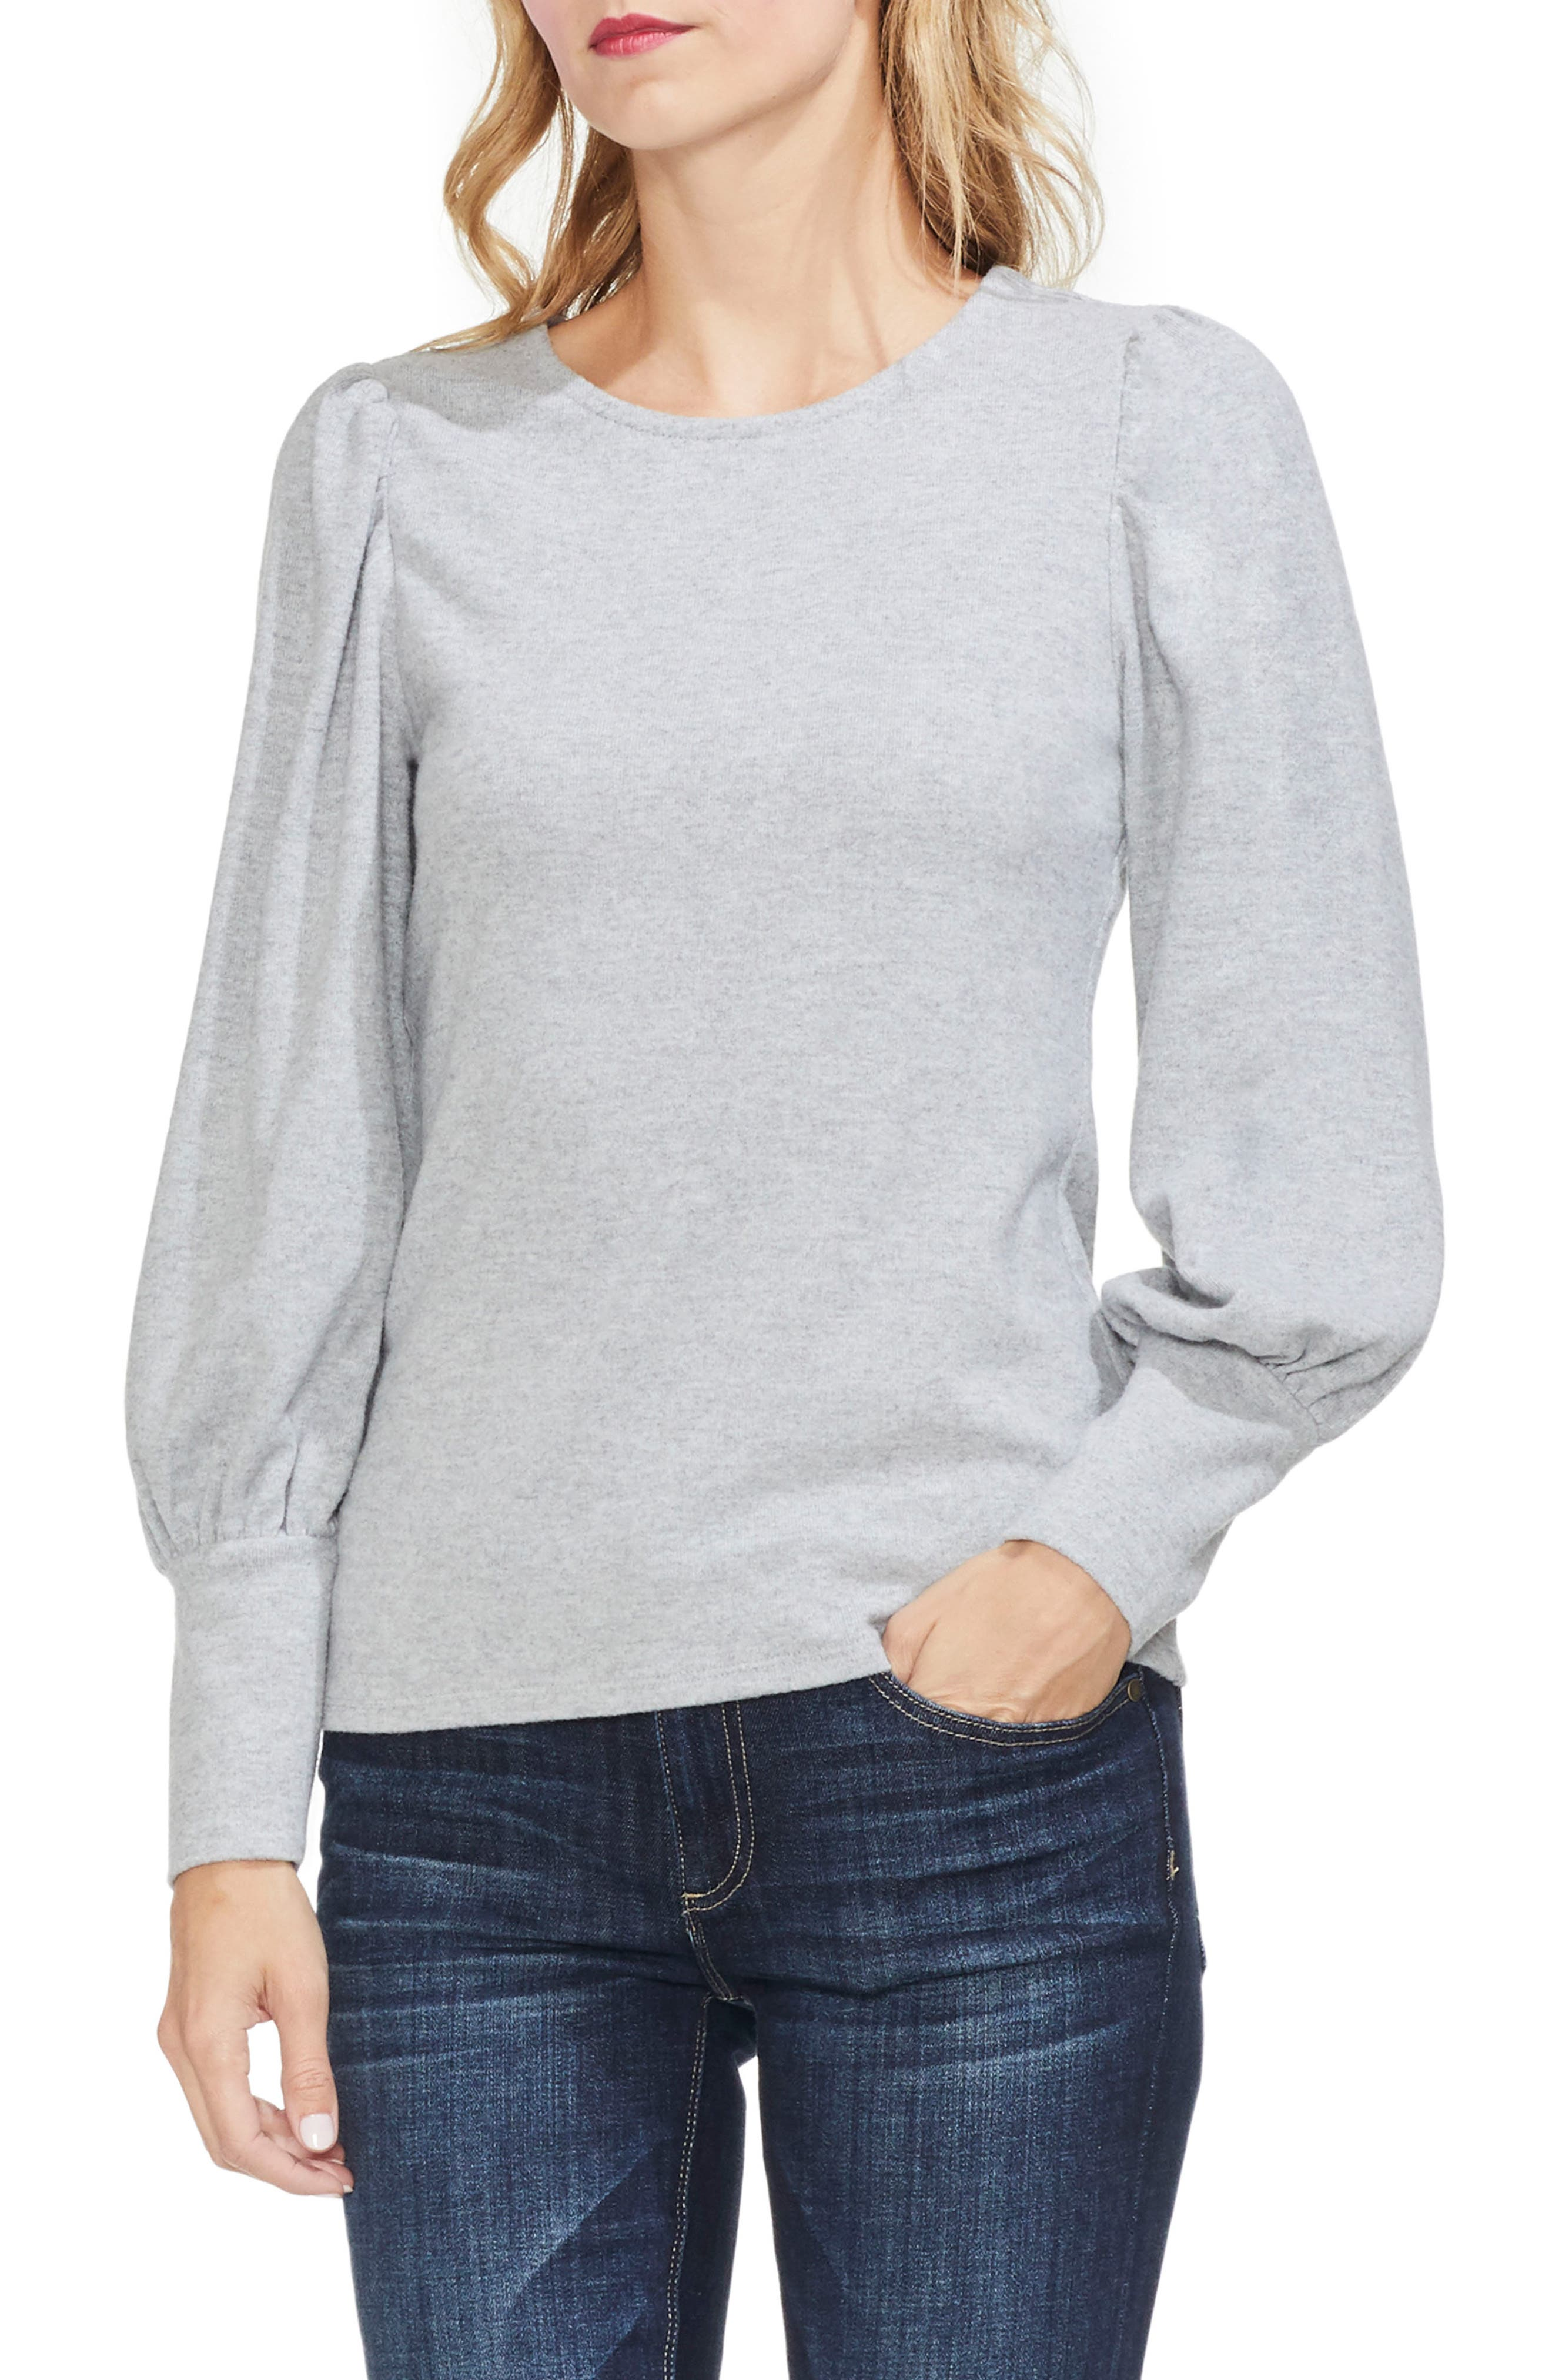 Vince Camuto Bubble Sleeve Knit Top, Grey